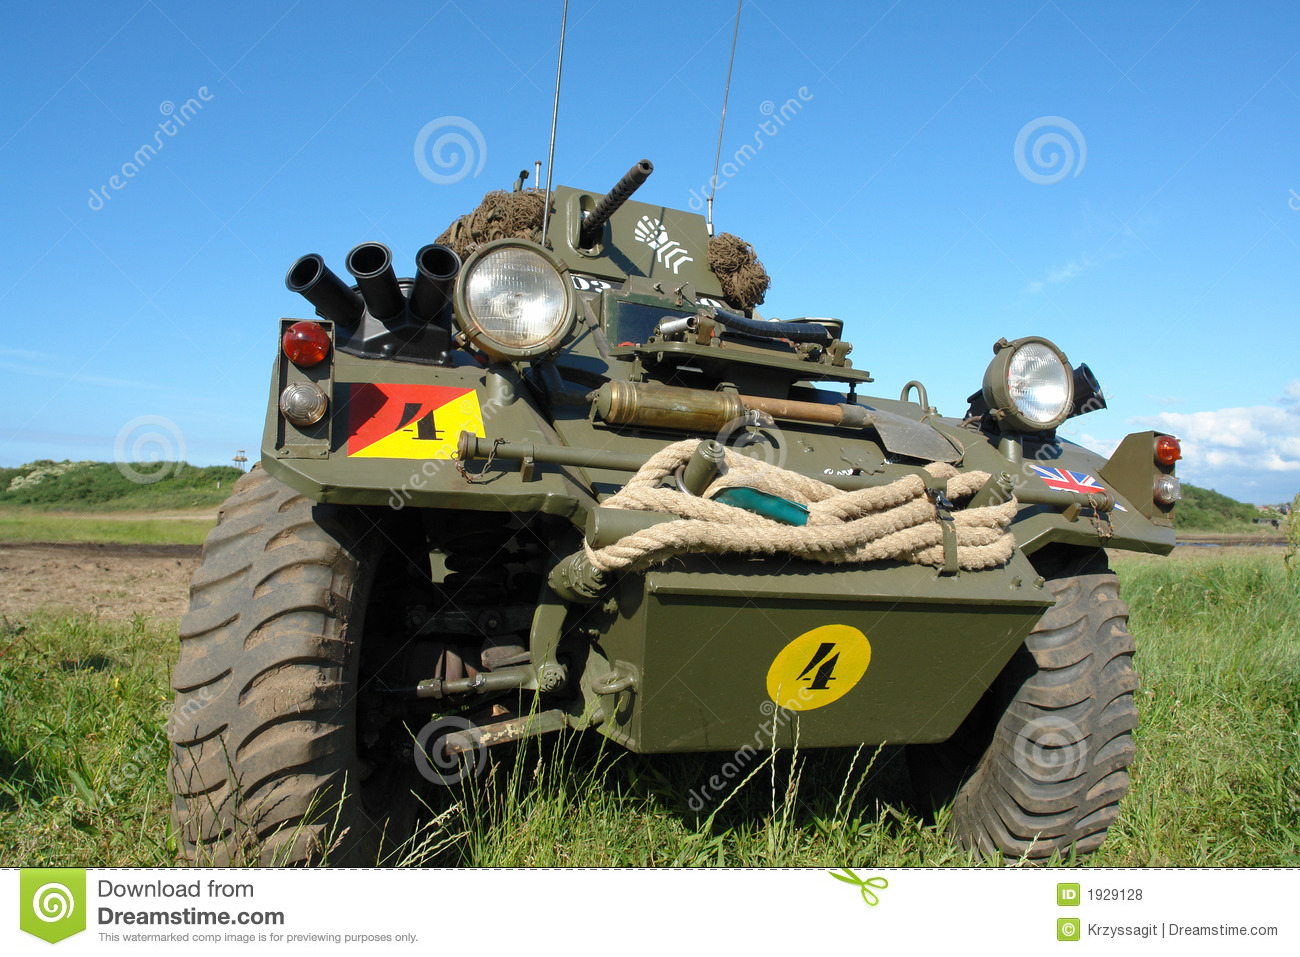 Military vehicle, old, WWII type.